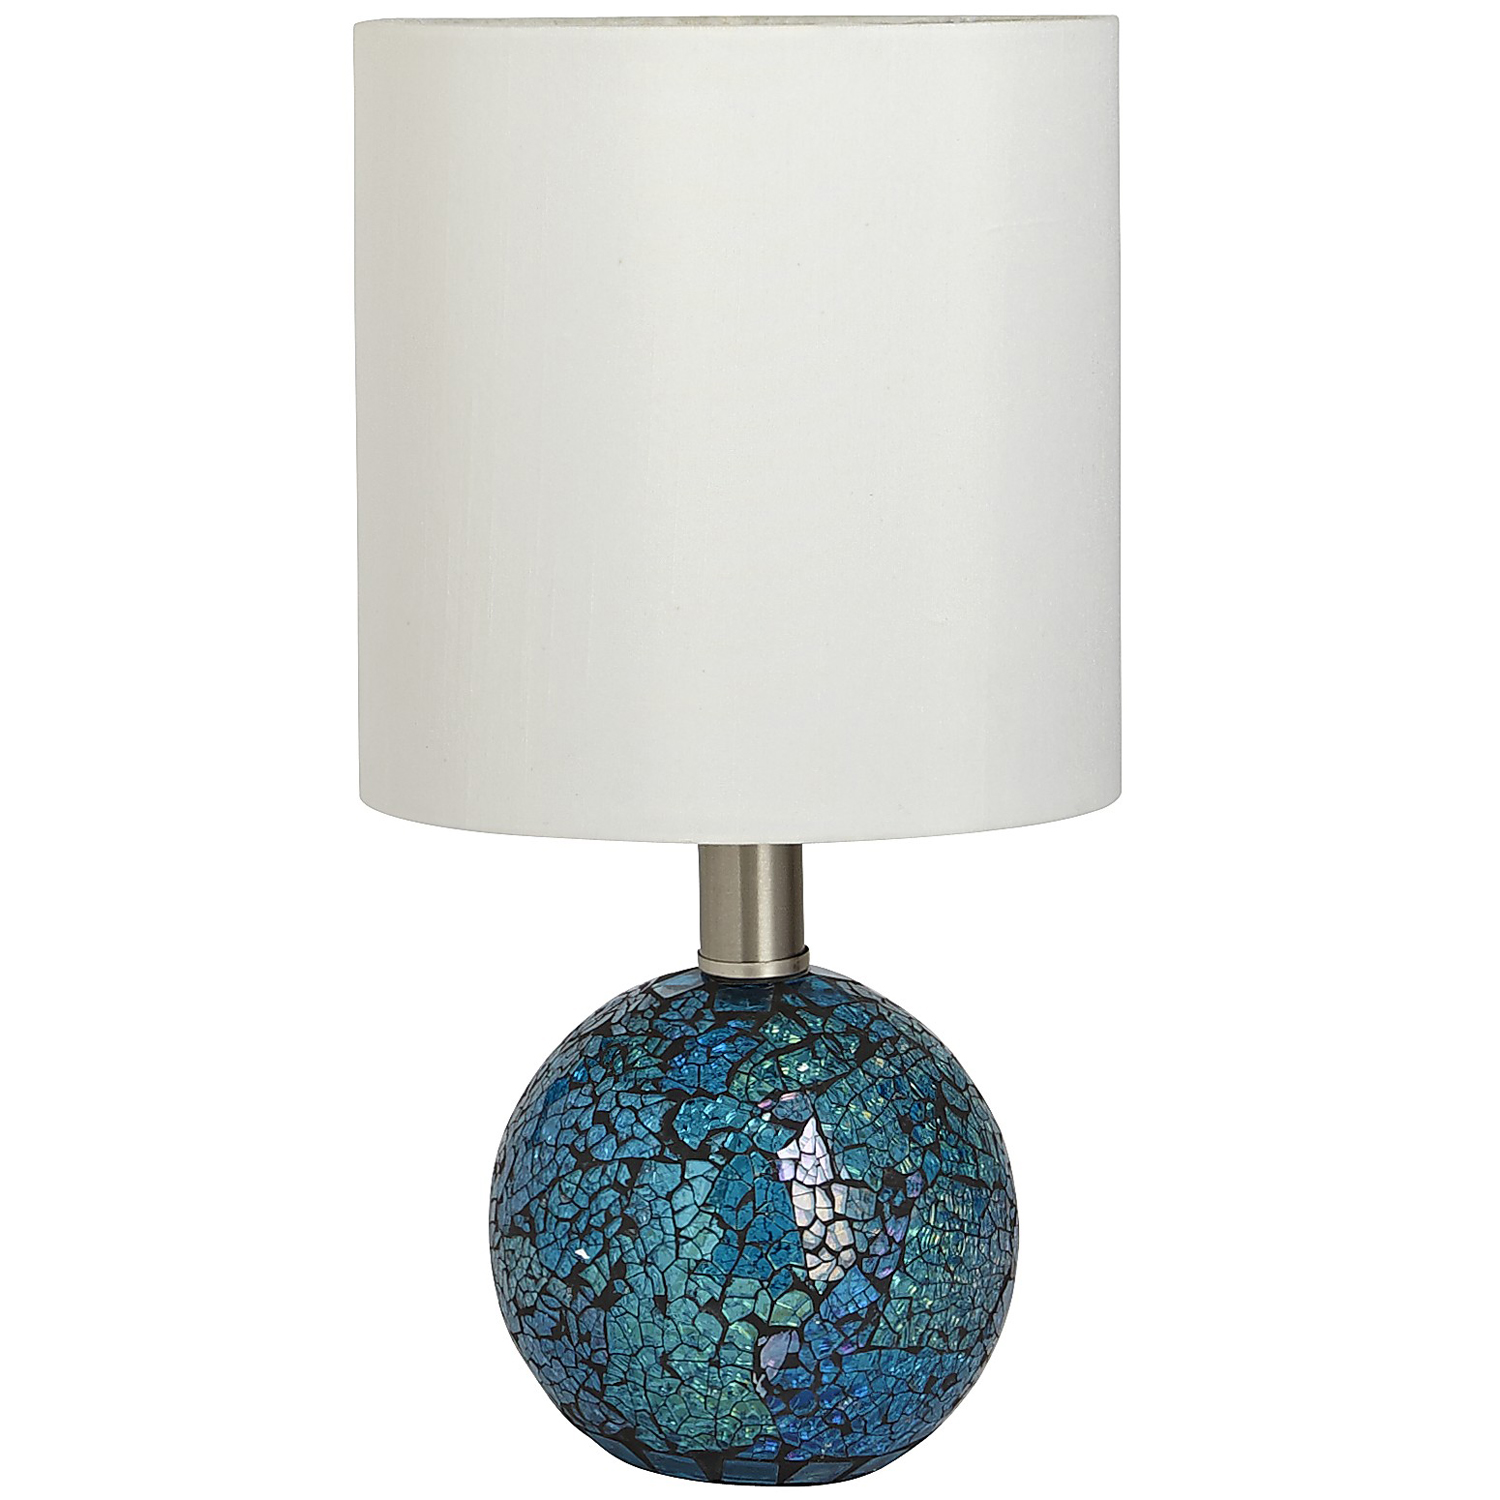 variation thumbnail of Crackle Mini Lamp - Teal